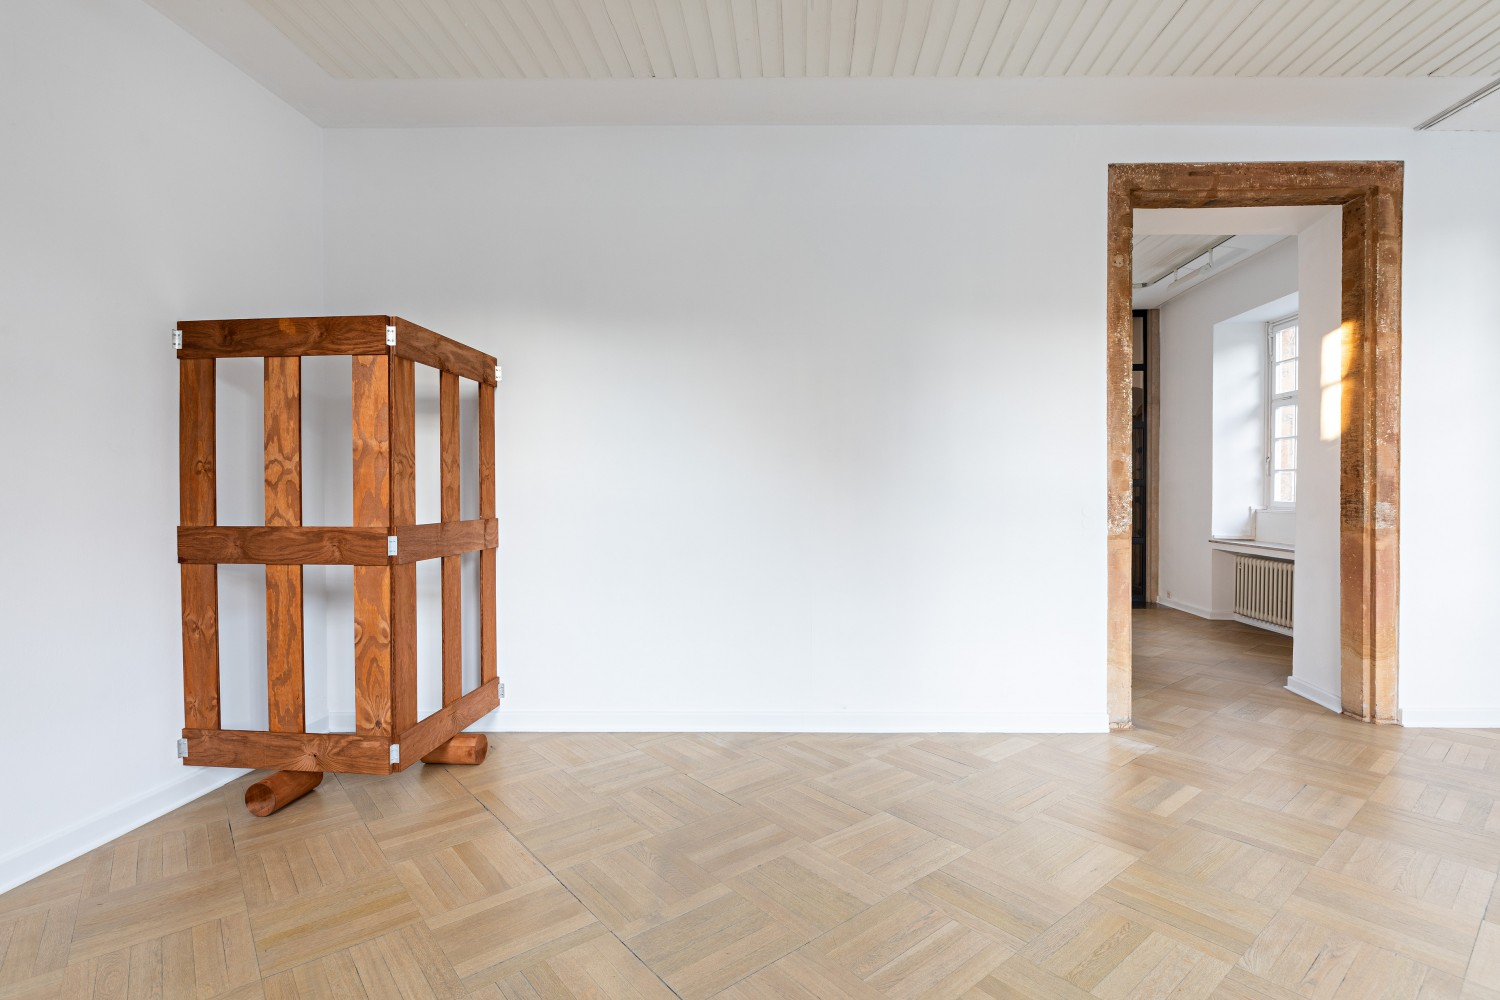 Back to the first object: the grid-like arrangement of the wooden gates now becomes clear. Even if one cannot see the object in the other room through the wall, it is now possible to imagine how the gate continues across walls and thus creates its own spaces.